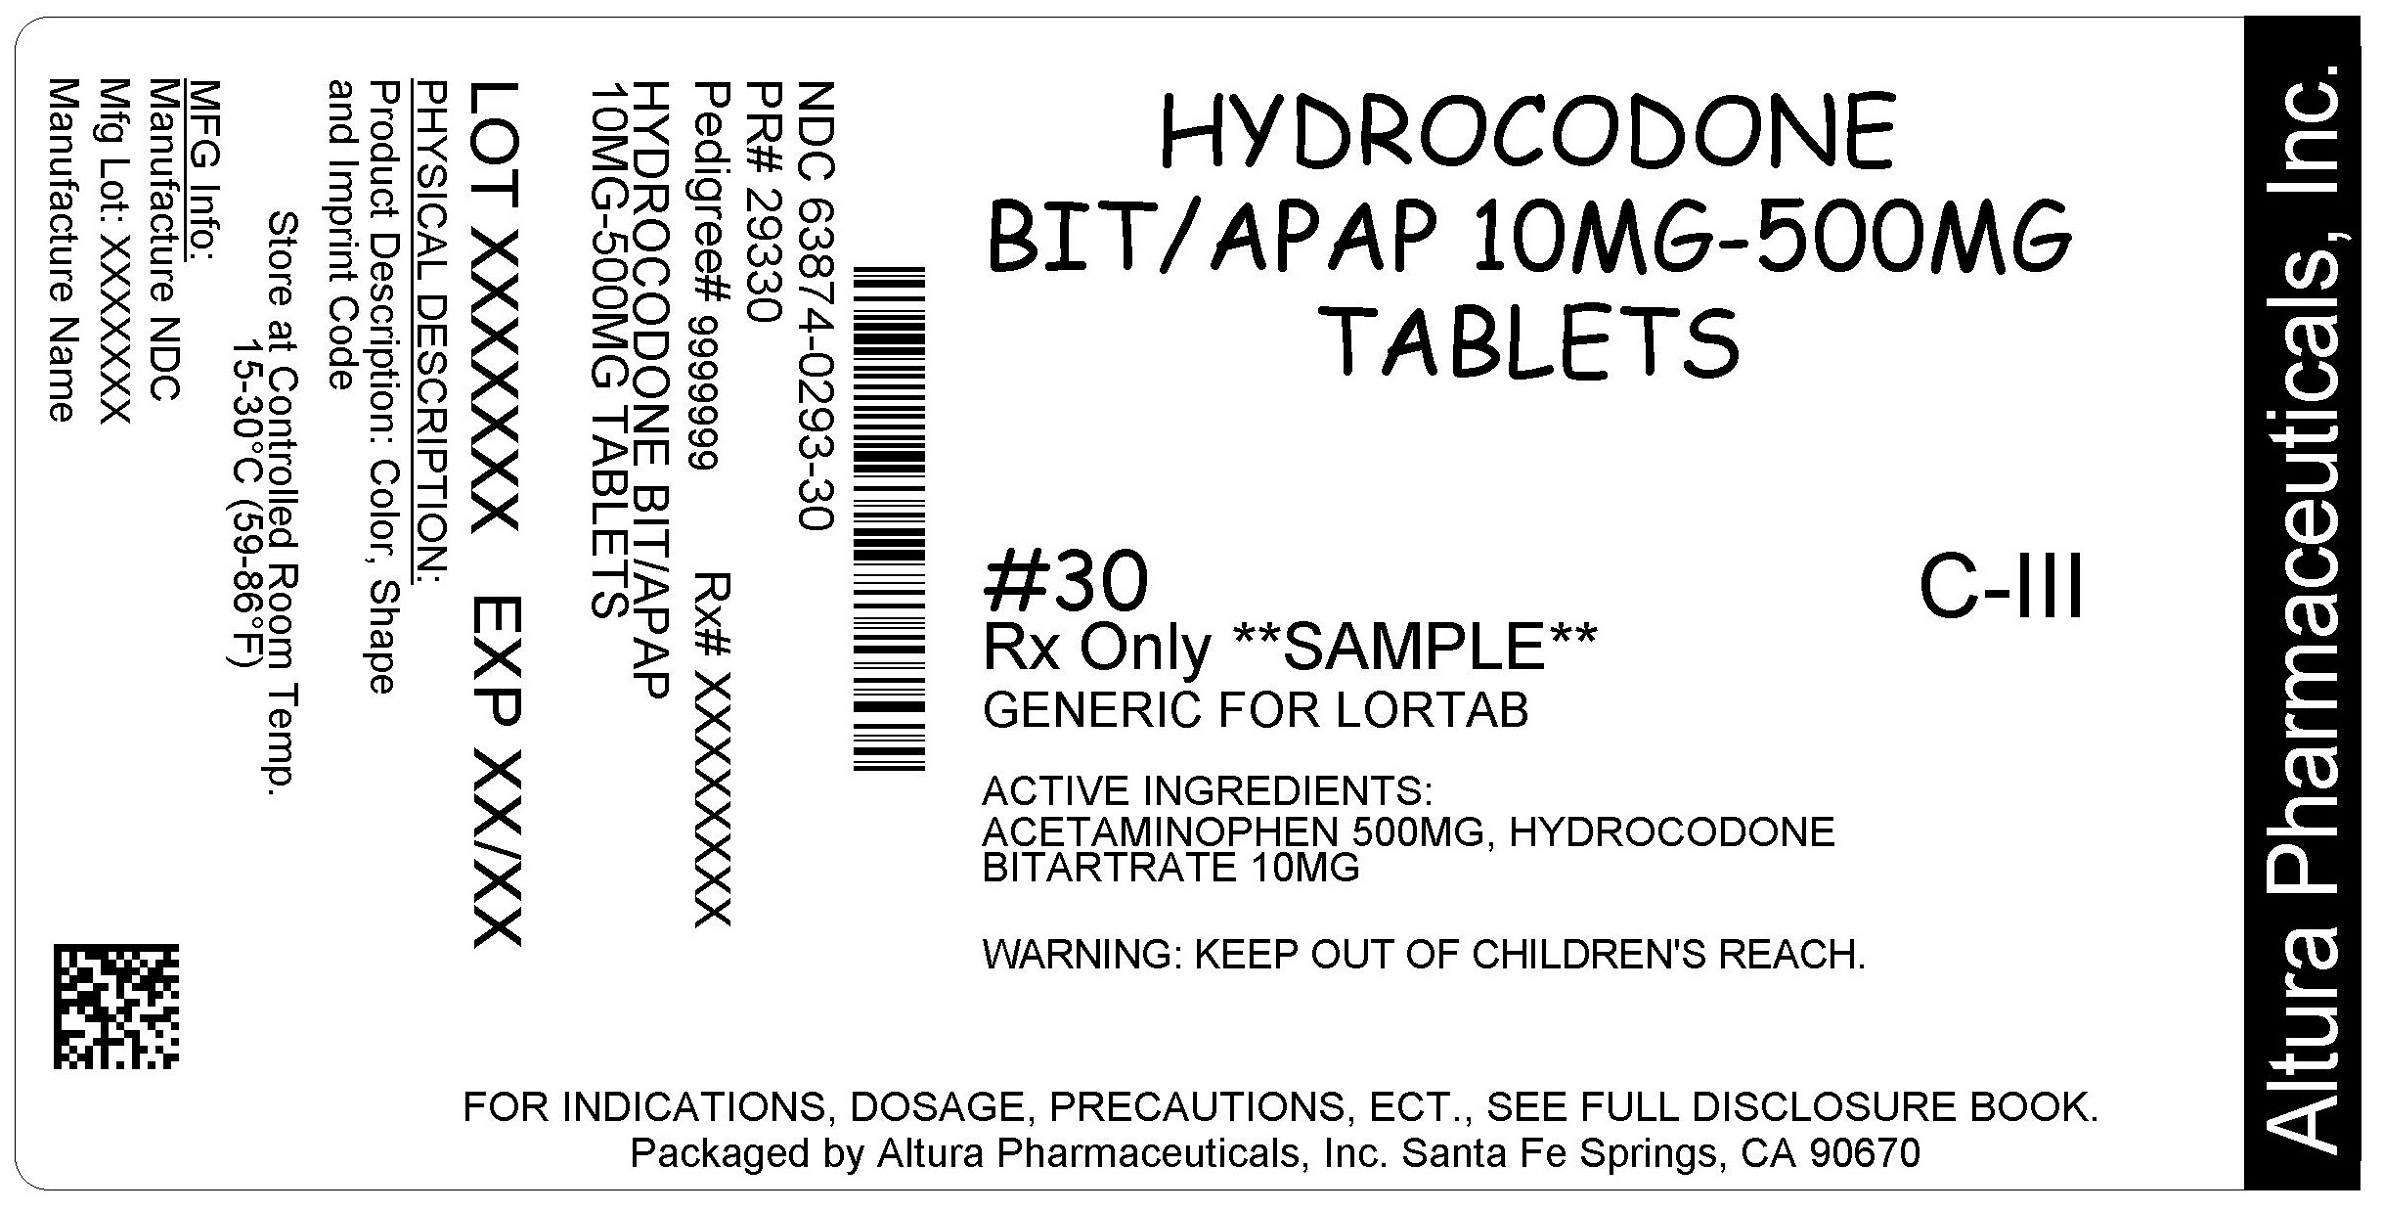 This is an image of the label for 10 mg/500 mg Hydrocodone Bitartrate and Acetaminophen Tablets.